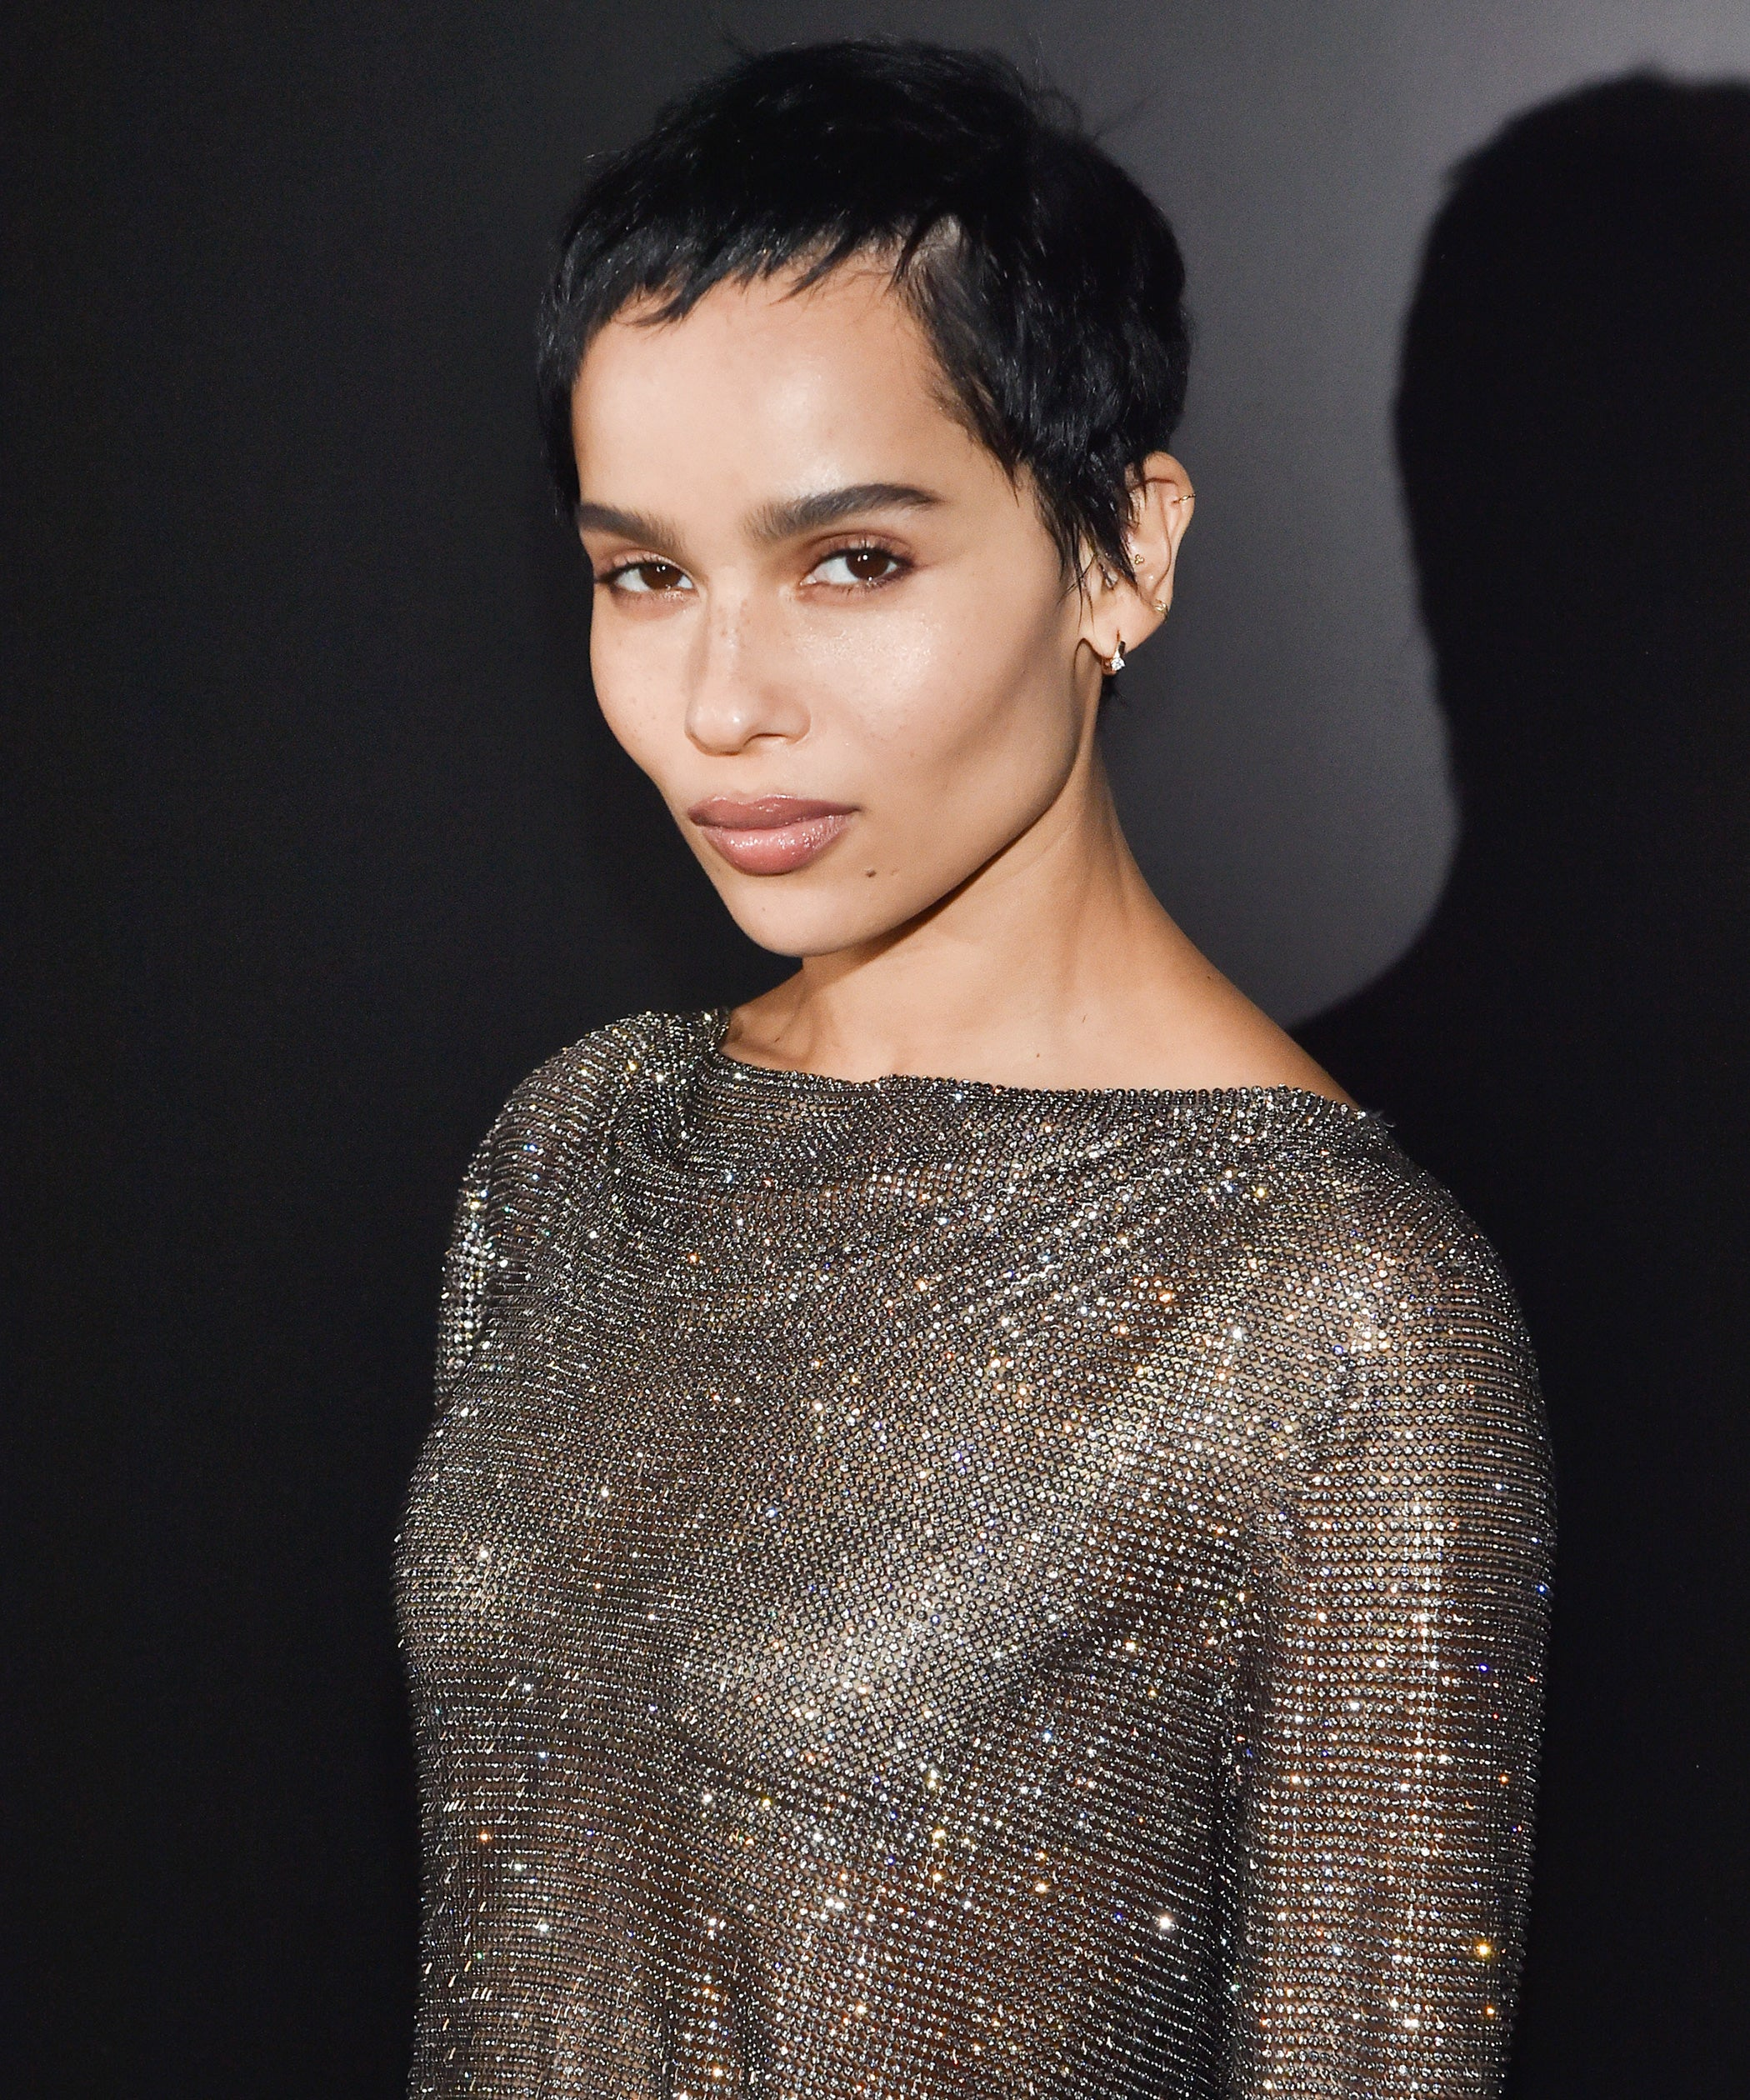 July 15th - Casio Exilim Mobile Launch - Zoe Kravitz at